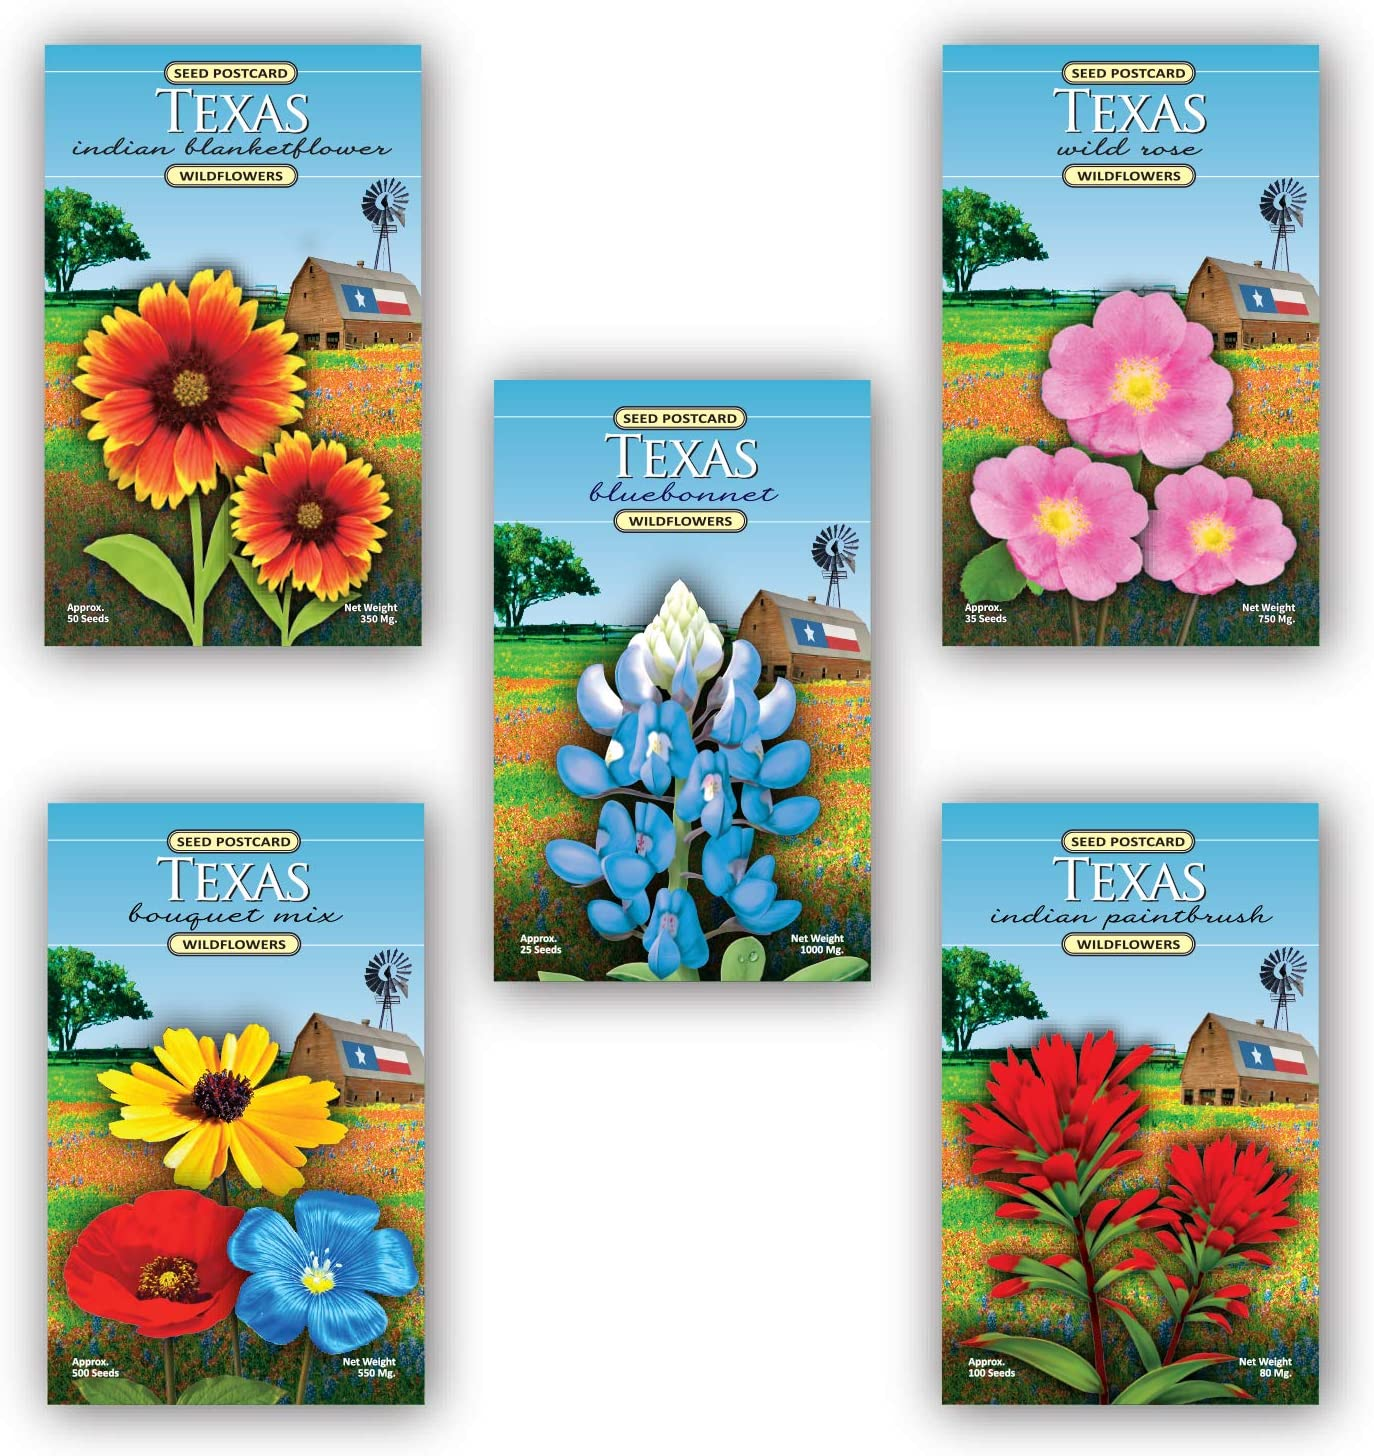 Texas Wildflowers Max 87% OFF - 5 Seed Rose Includes New Orleans Mall Bl Assortment Packet